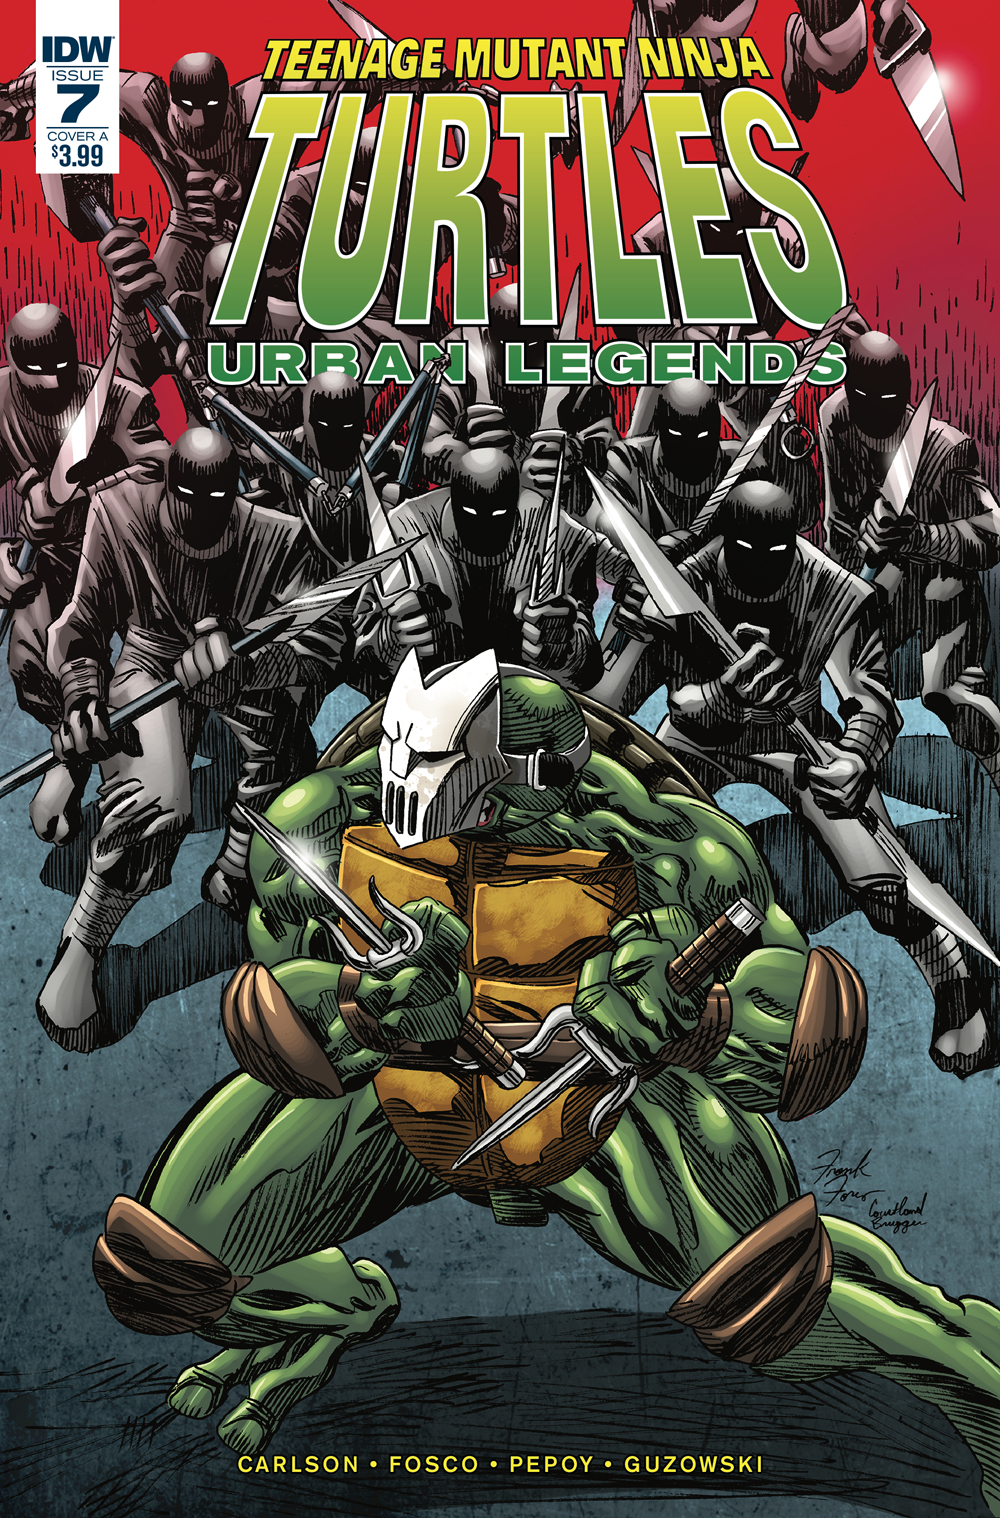 TMNT URBAN LEGENDS #7 CVR A FOSCO